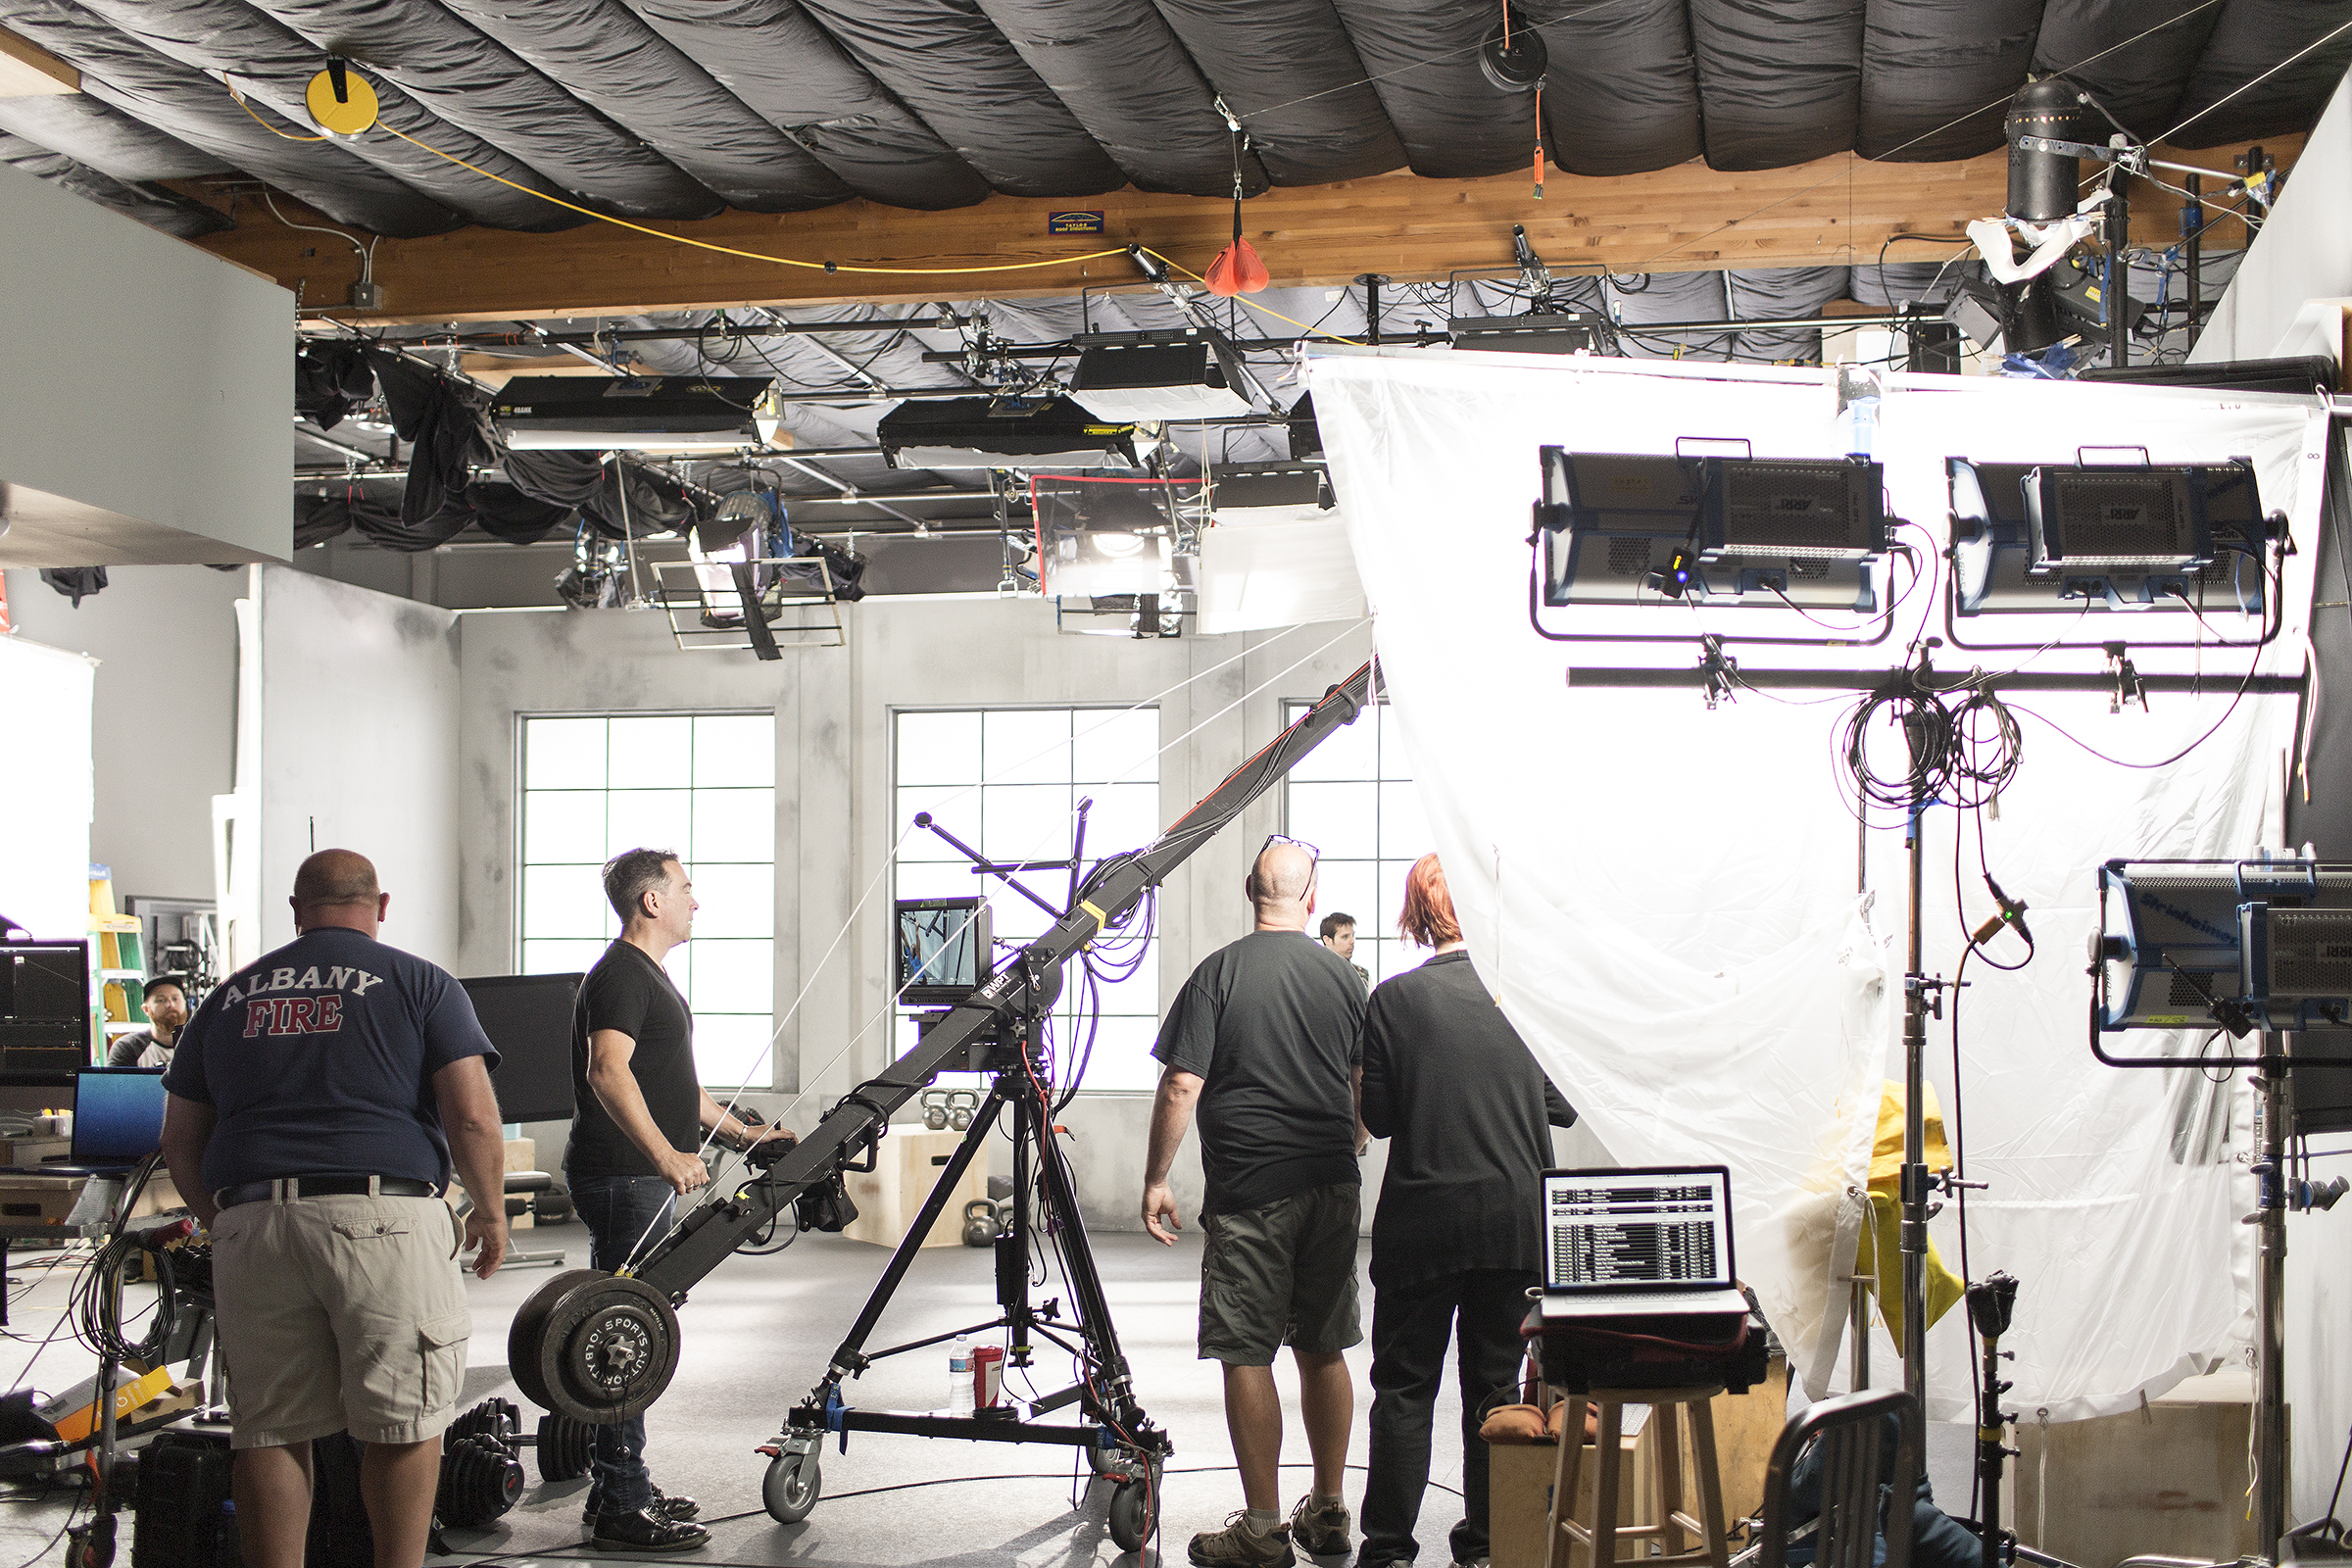 Behind the scenes on set at the Fitstar moves shoot. The production crew prepares for the first day of filming with the goal of capturing 600 exercise moves performed by over 17 models.